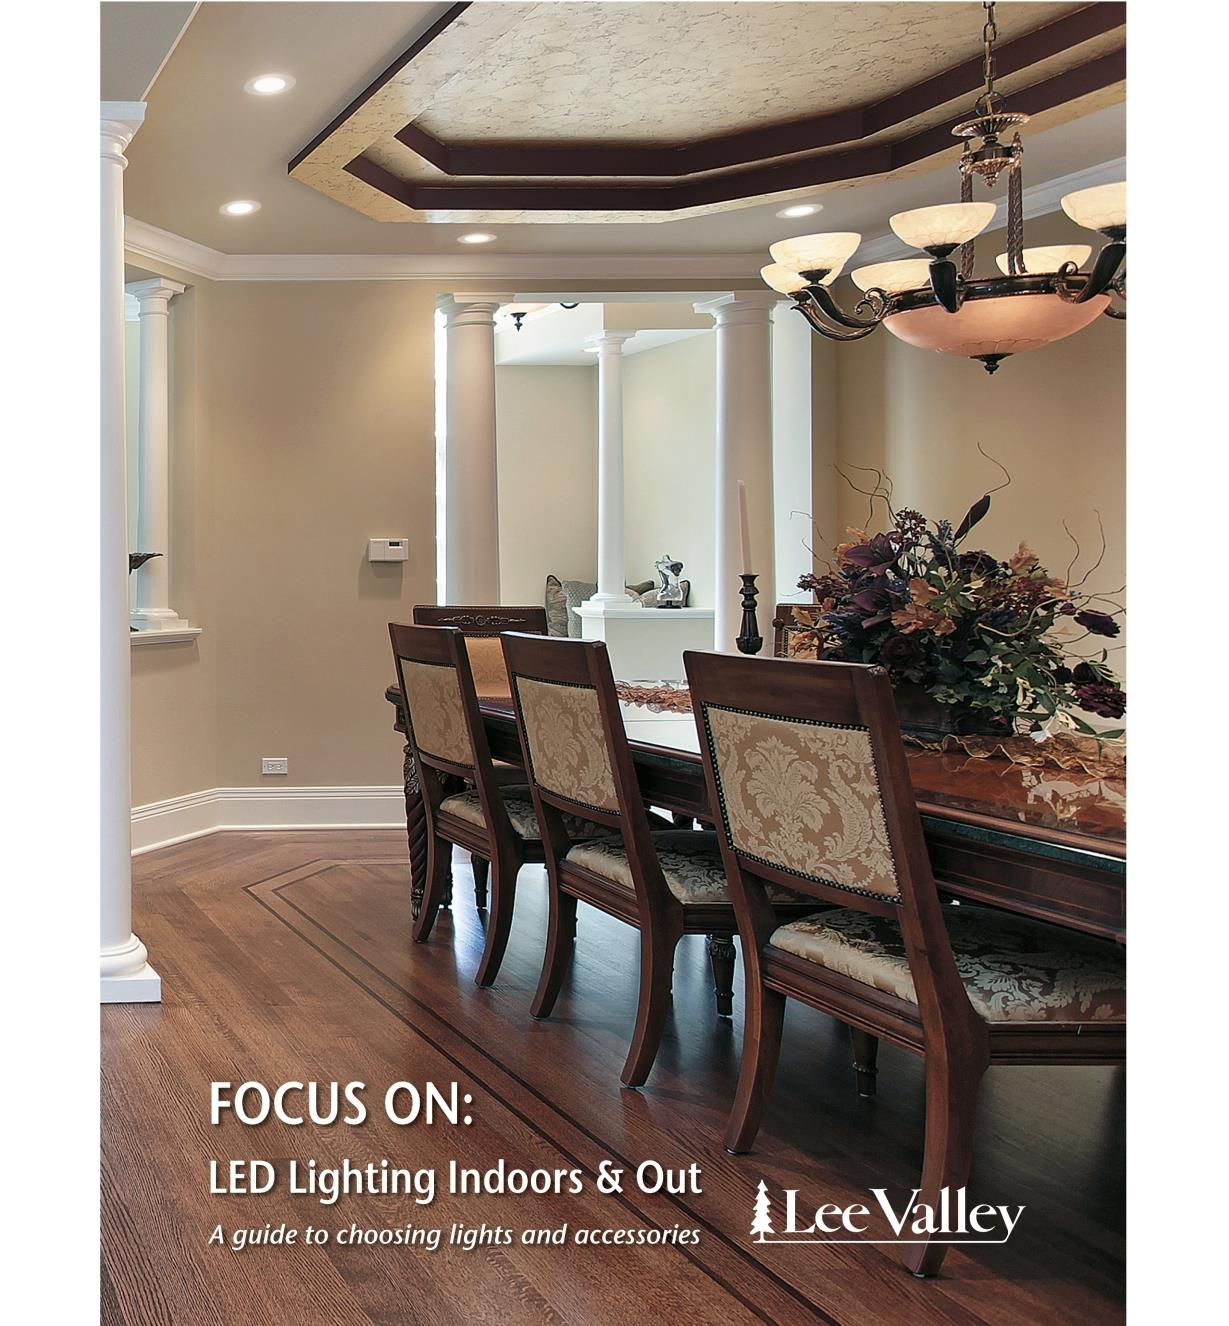 C0119LED - Focus On: LED Lighting Indoors & Out